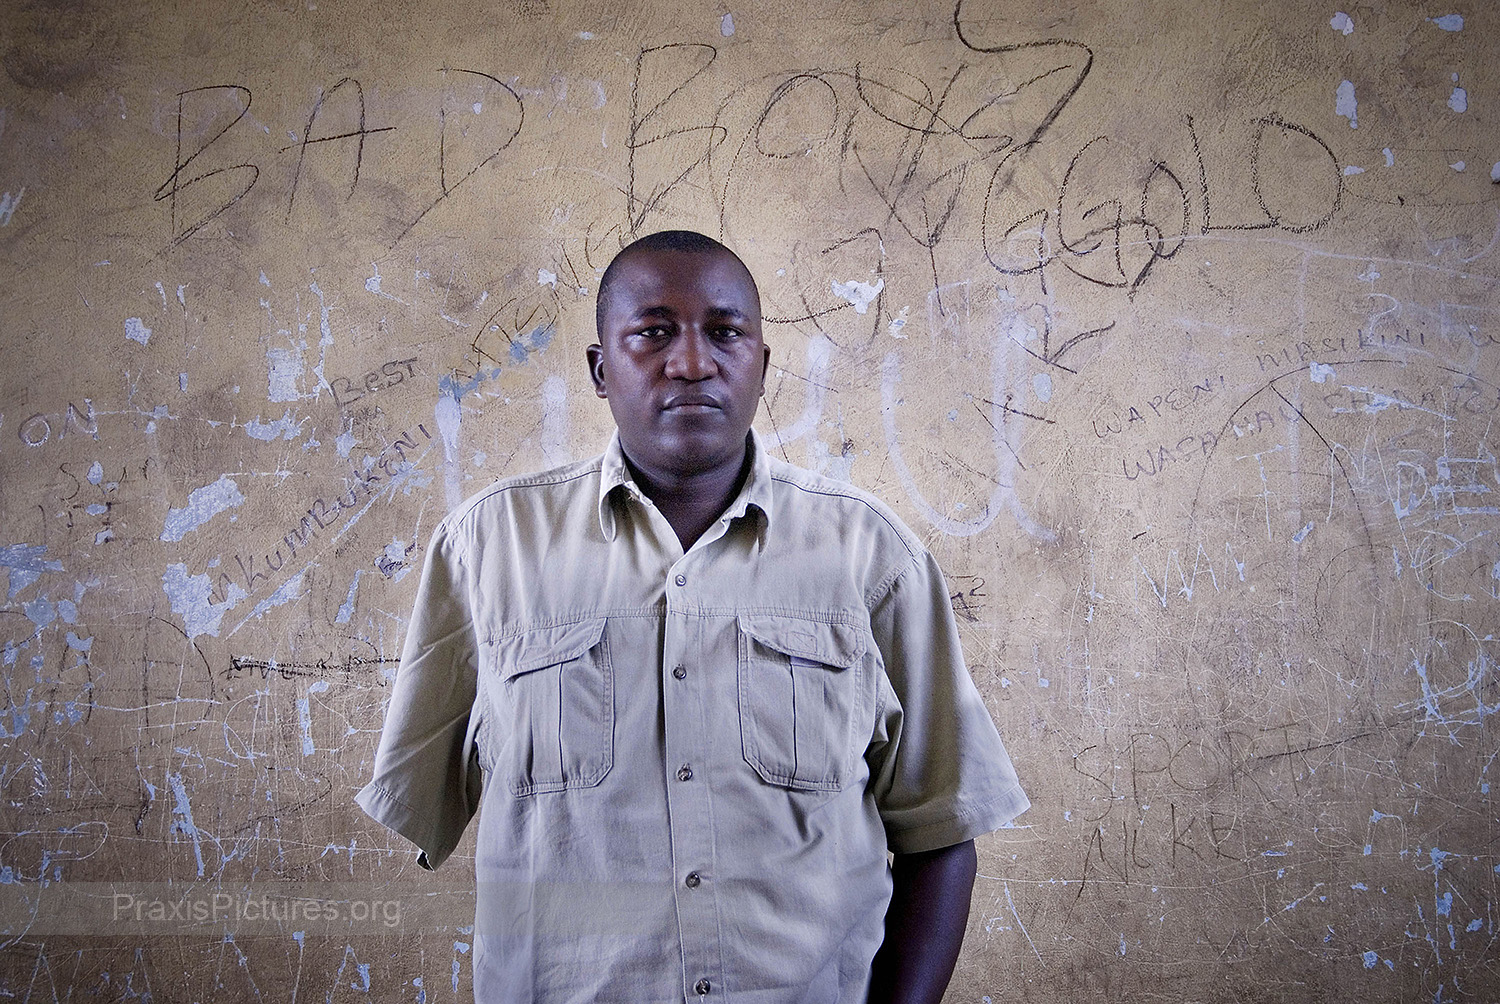 """DEUS - Deus had worked in the Bulyanhulu Gold Mine, in Tanzania, as a supervisor for five years when he was in an accident in 2006 where a big rock fell on him. His coworkers pulled him away in time to save his life before more rocks came falling down. The Bulyanhulu Gold Mine boasts  """"one of the most up-to-date and well-equipped and staffed medical clinics in Tanzania.""""  Yet, despite these claims, Deus had to be flown one thousand kilometers away to Dar es Salaam, waiting for a total of 18 hours before receiving any treatment. His arm eventually had to be amputated, but he vividly remembers the doctor telling him that if he had received treatment earlier it would have been a very simple procedure to save his arm which any trained doctor would have been able to perform. Continuous labor disputes have been a recurring theme at the Bulyanhulu Gold Mine with workers complaining,  """"there is no humanity in the way they [treat] us! They make us promises while we are of use to them. But then, if we become sick, or old, or start to complain about our rights, then they just spit us out like a chewing gum that has lost its flavor."""""""